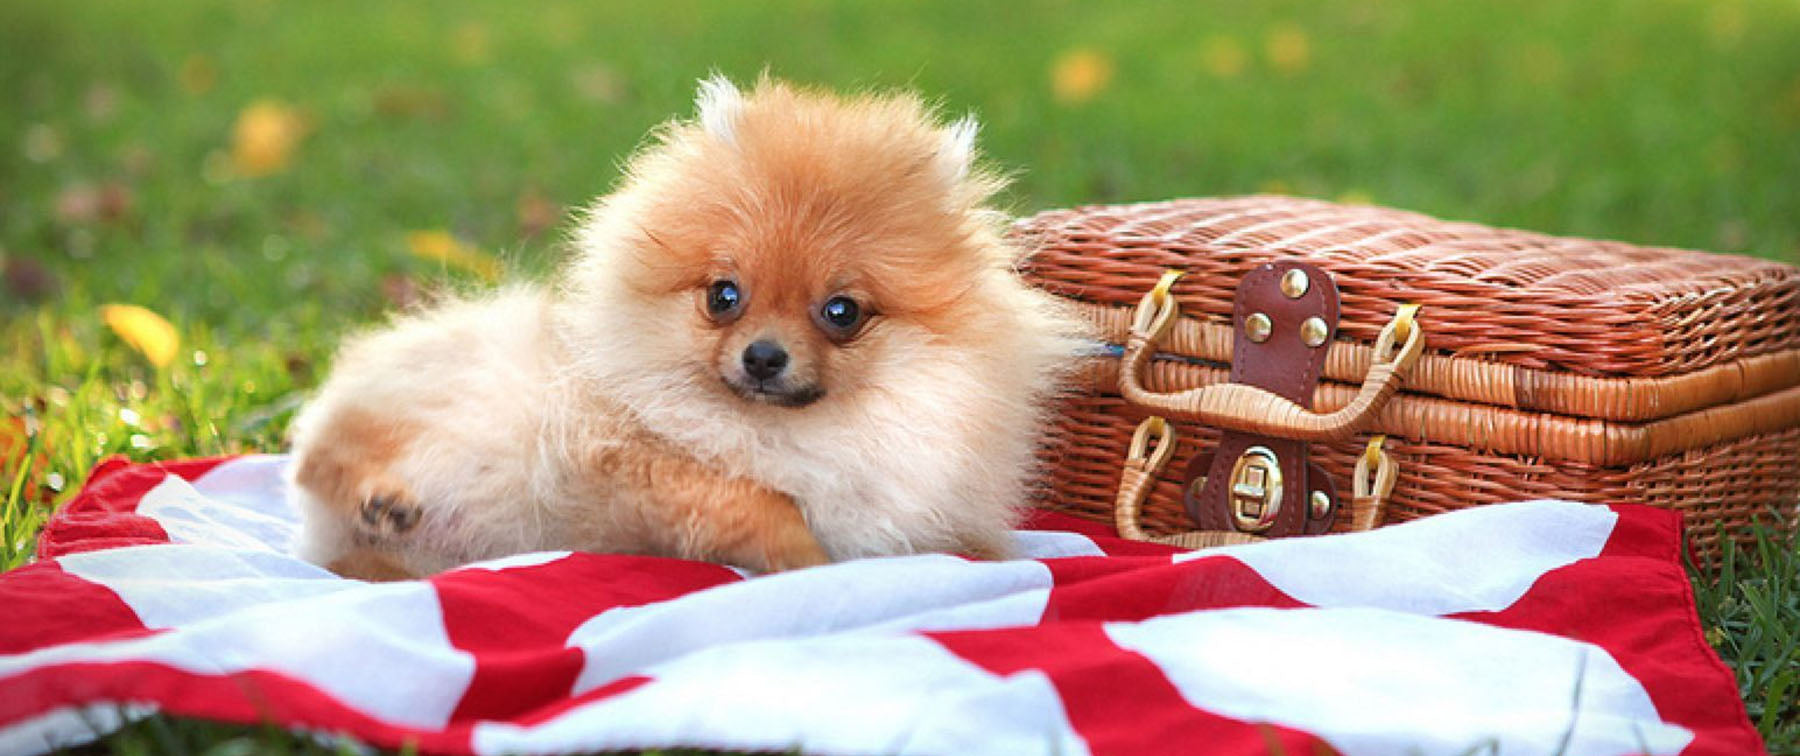 Summer Picnic with the Dog? Woof Woof!